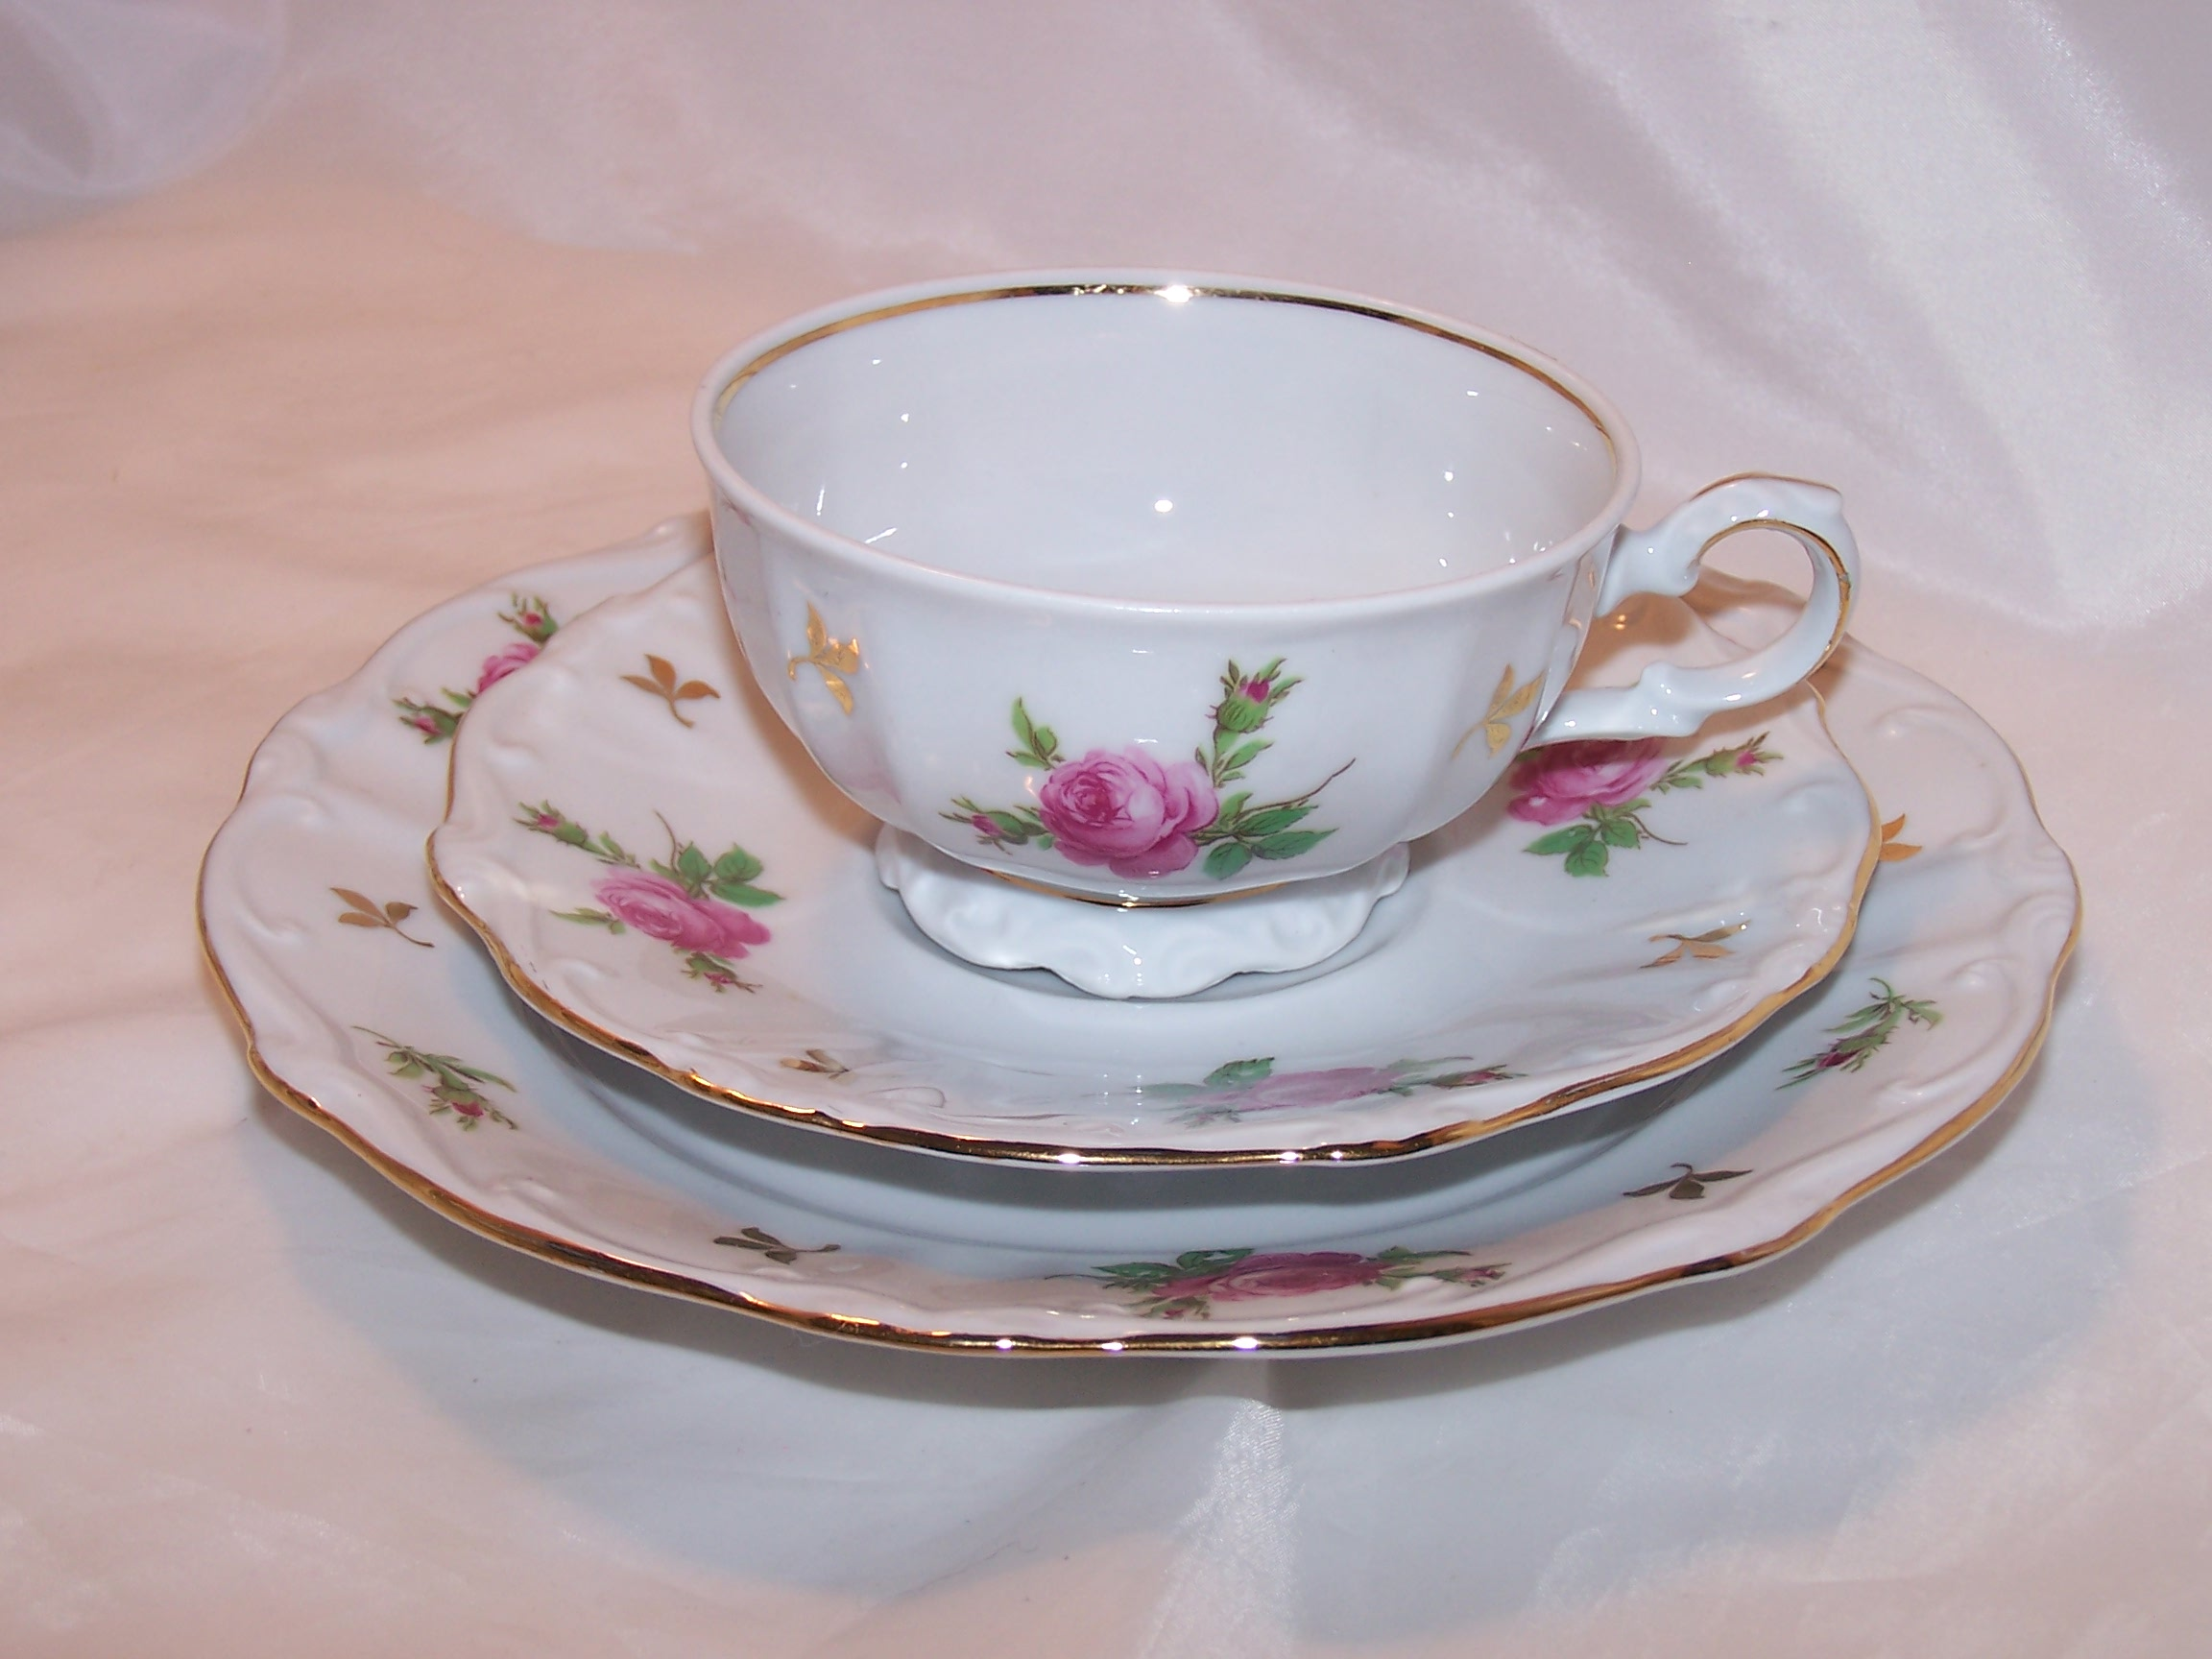 Bareuther Bavaria Dessert Service for 8, Germany, ca 1931 to 1950